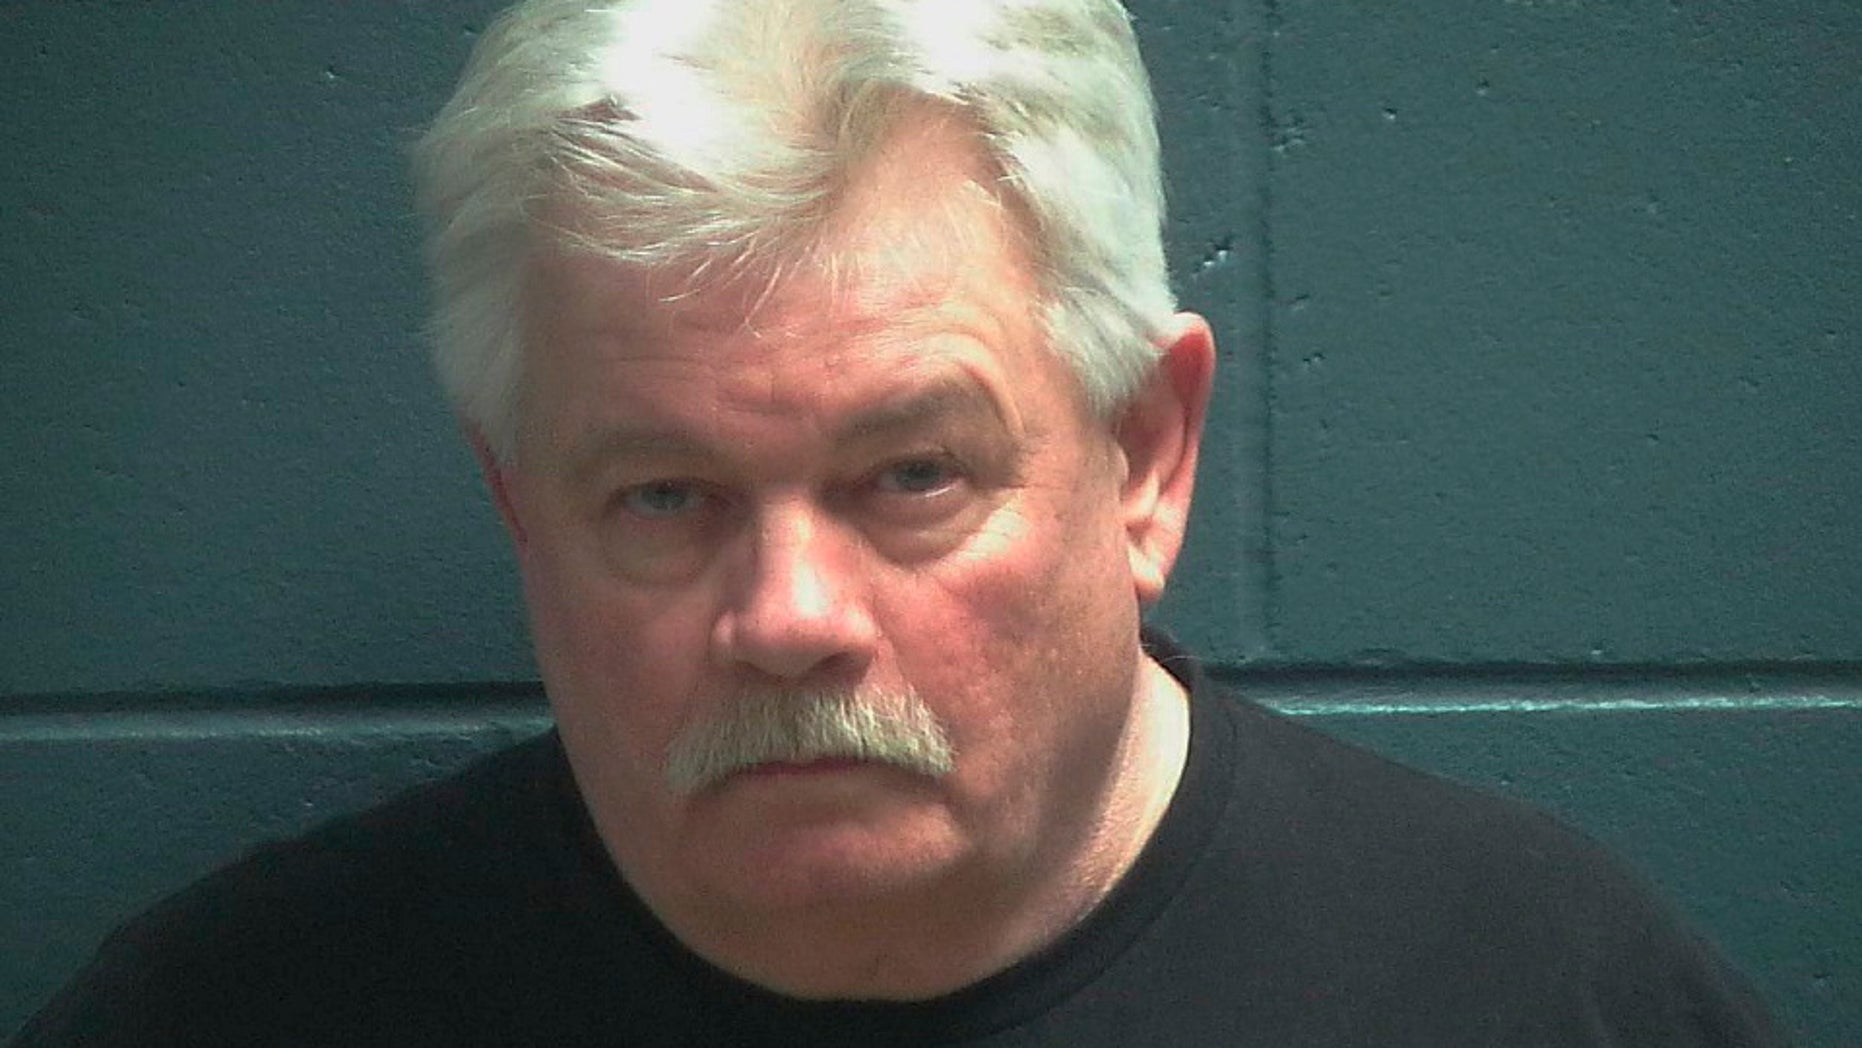 Douglas Kluth is facing at least his 10th drunken driving charge. Authorities allege he had an open beer on the center console of his car. (Oconto County Jail via AP)